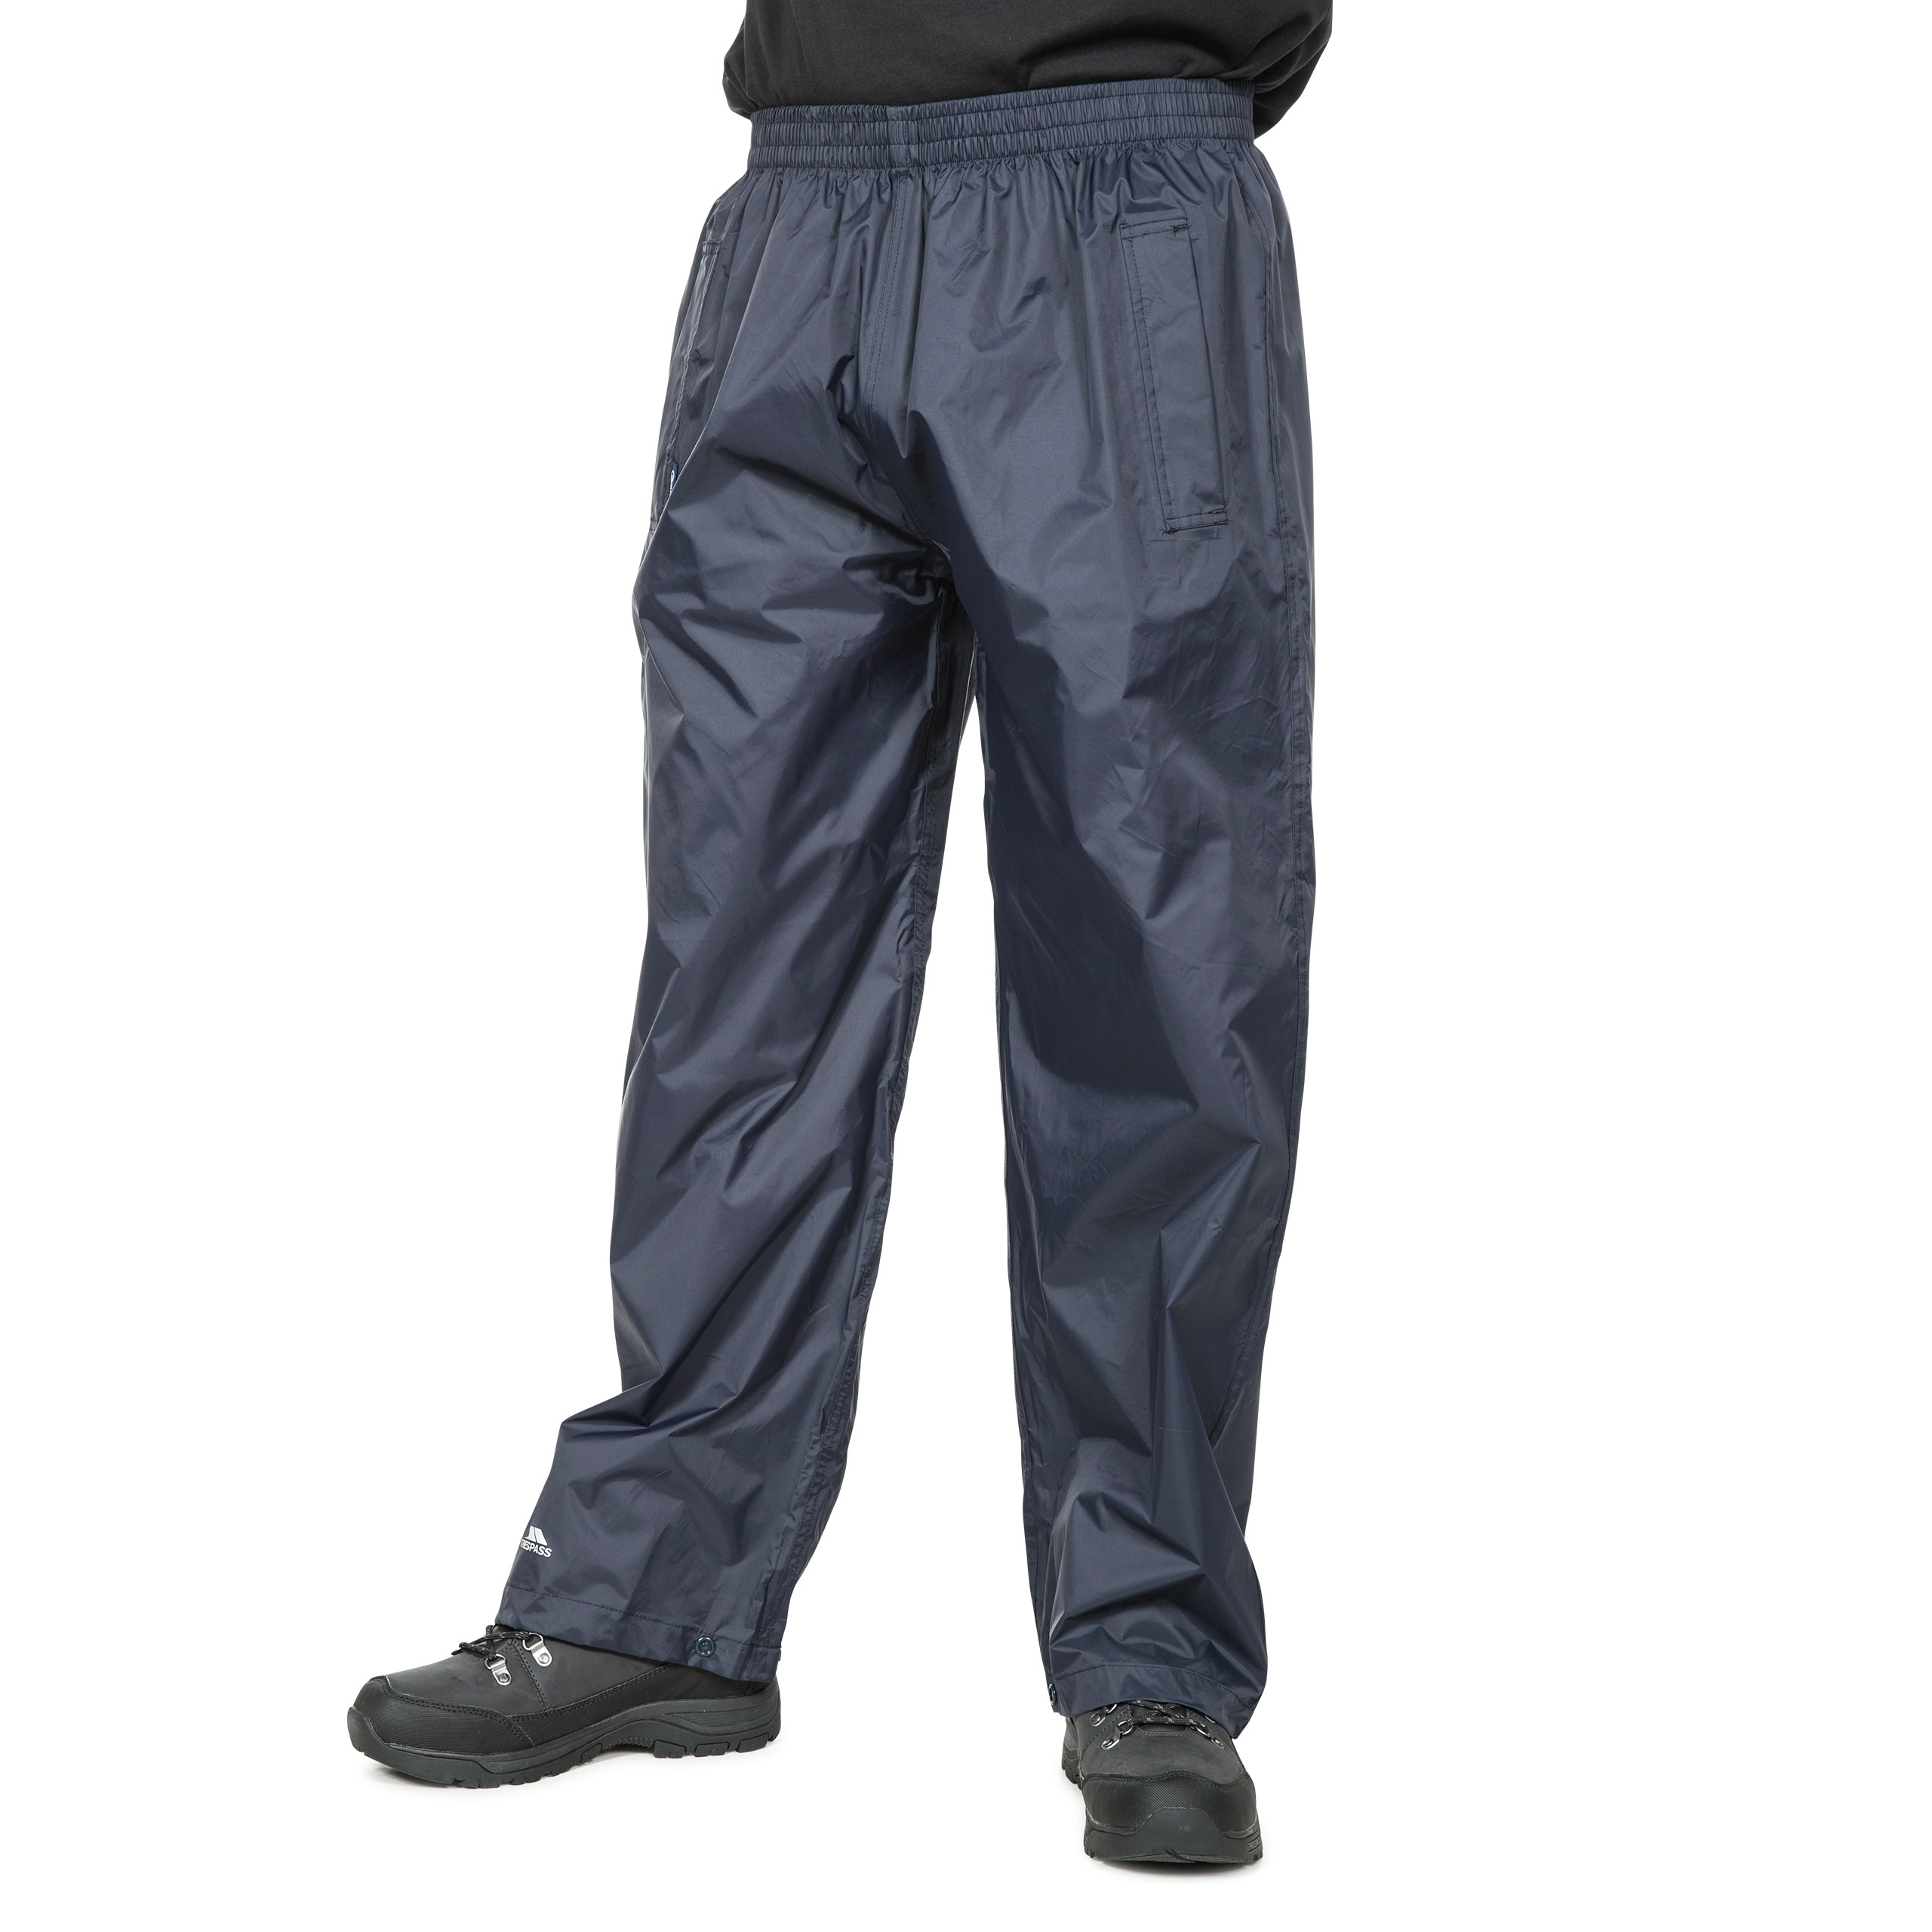 Trespass-Mens-Womens-Waterproof-Trousers-Packaway-Breathable-Qikpac thumbnail 11